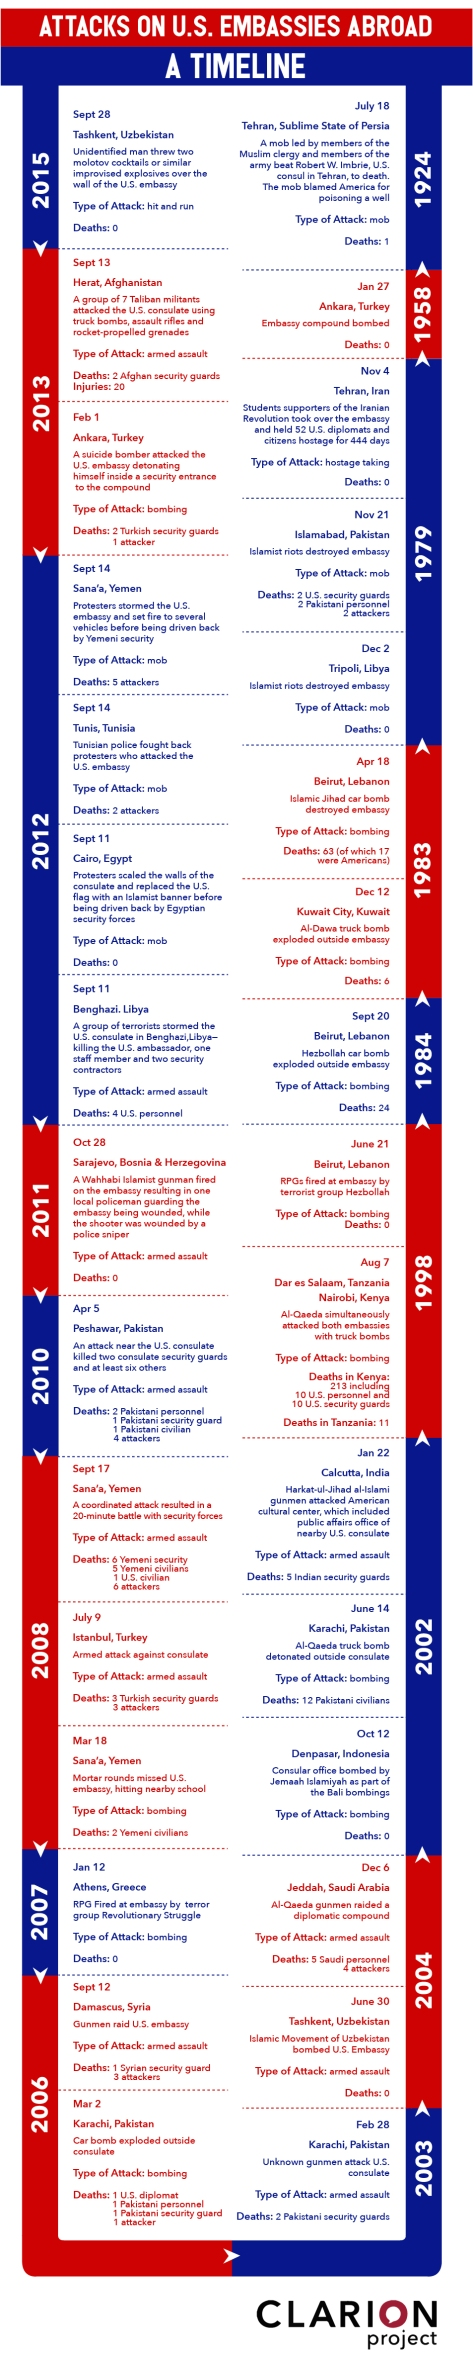 US-Embassy-attacks-timeline